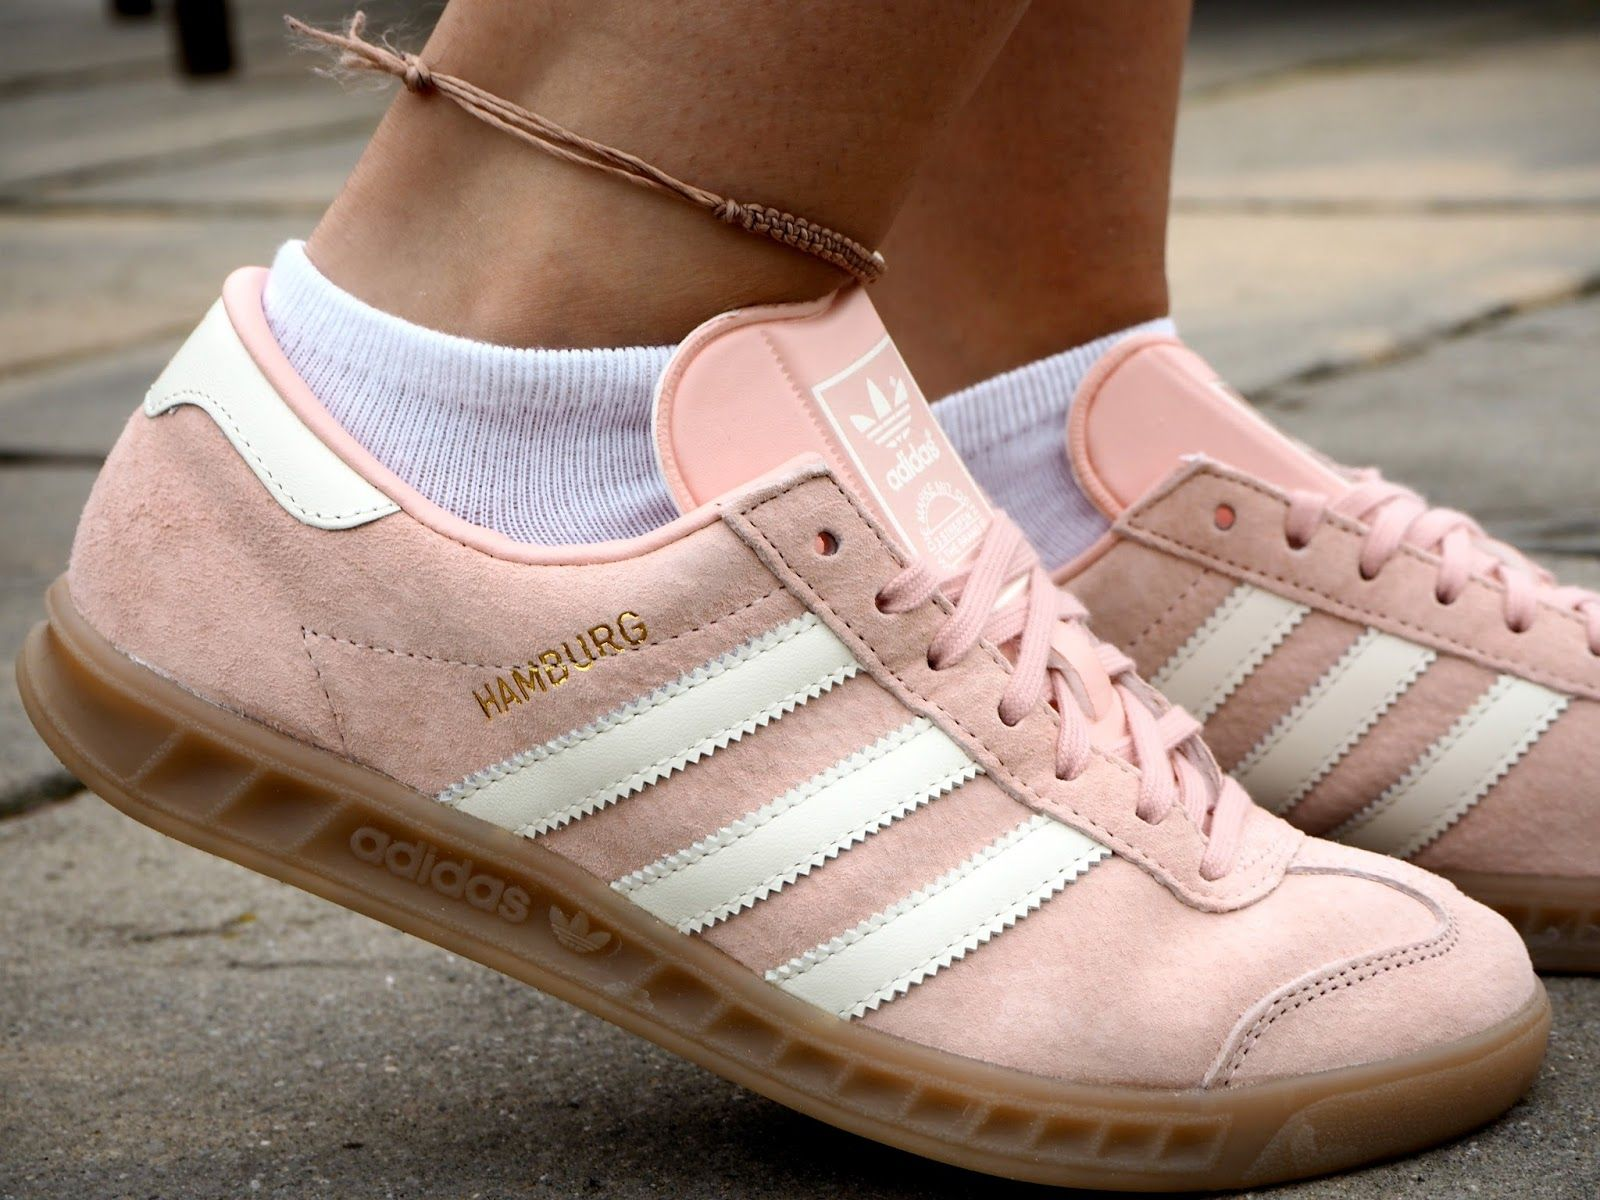 Adidas gazelle sneakers light pink or peach color